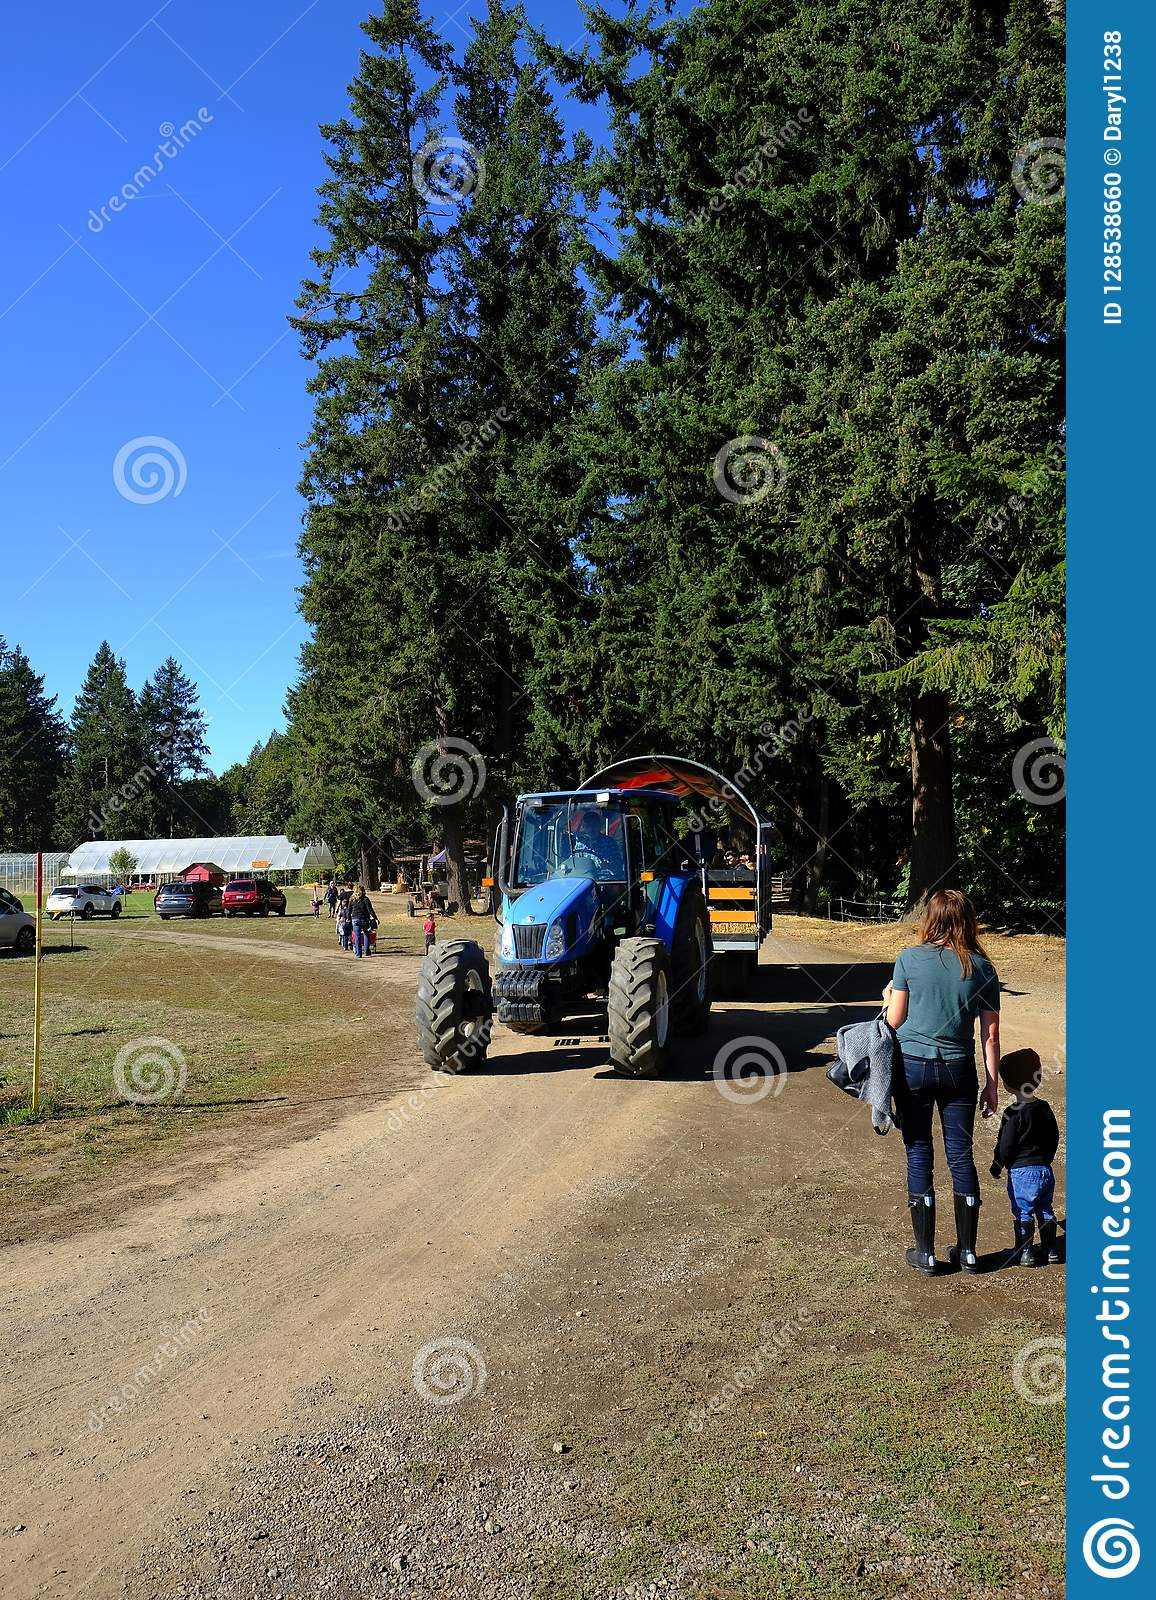 Blue farm tractor with big green trees on a dirt road with blue sky